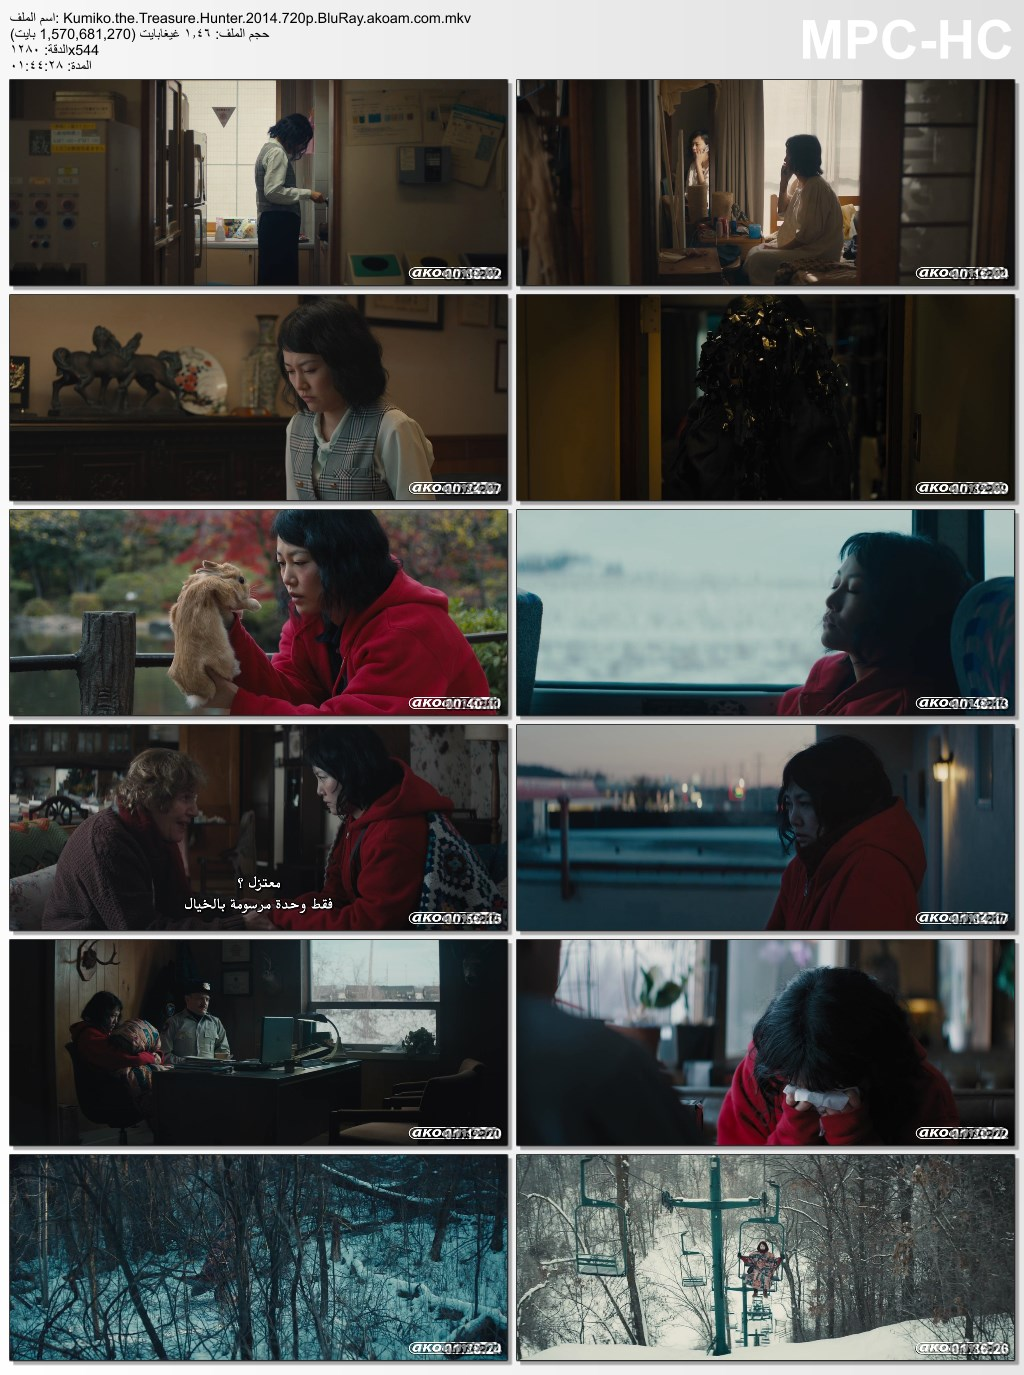 Kumiko,the Treasure Hunter,Kumiko,the Treasure Hunter 2015,Kumiko,the Treasure Hunter 2015,Kumiko,the Treasure Hunter 2014,Kumiko,the Treasure Hunter,البلوراي,الدراما,رينكو كيكوتشي,Rinko Kikuchi